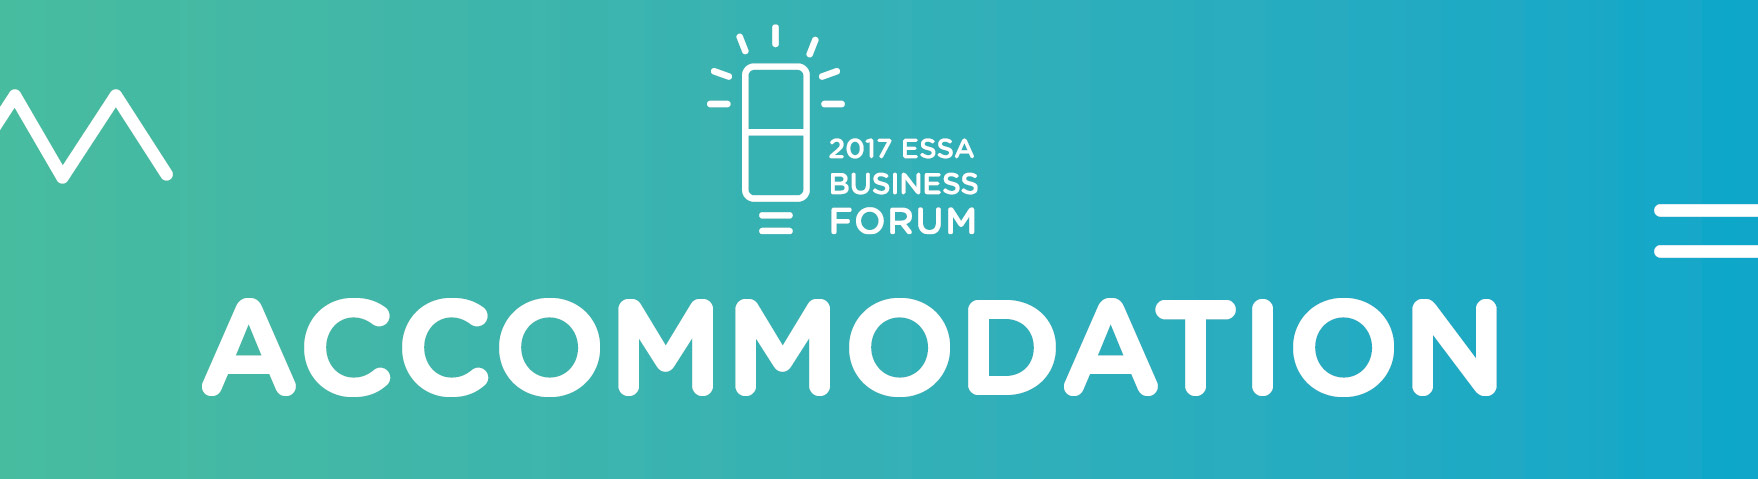 ESSA Business forum featured image banner_thin7